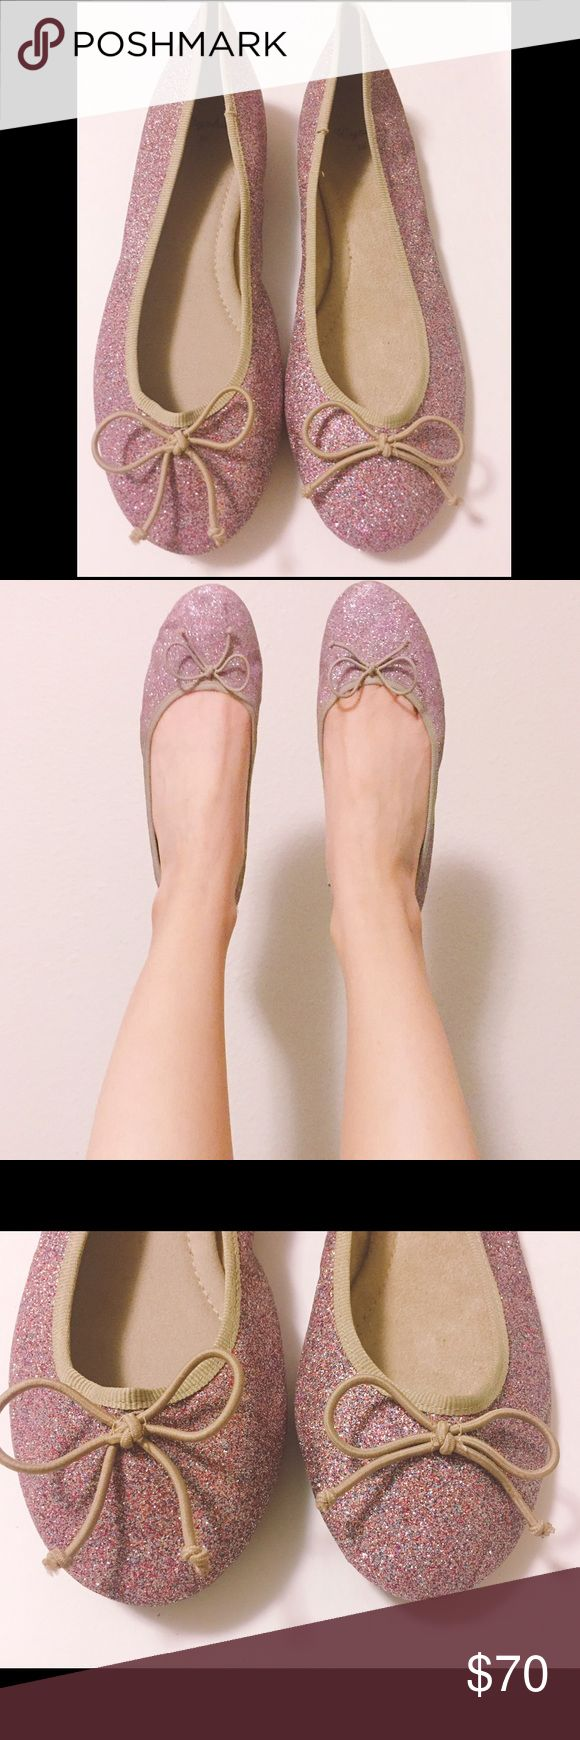 NWOB Zara Oysho pink glitter ballerina flat shoes NWOB Zara Oysho pink glitter ballerina flats. I bought 3 pairs of these but I'm gonna let these ones go  these are so comfy, sparkly and most importantly, versatile!  pink base with multi colored glitter on the exterior. Beige lining beautifully matches with glitter. Wear these with jeans, dress or black tights! They don't get dirty that easily. Feel free to ask any questions if you have. Thank you  Zara Shoes Flats & Loafers